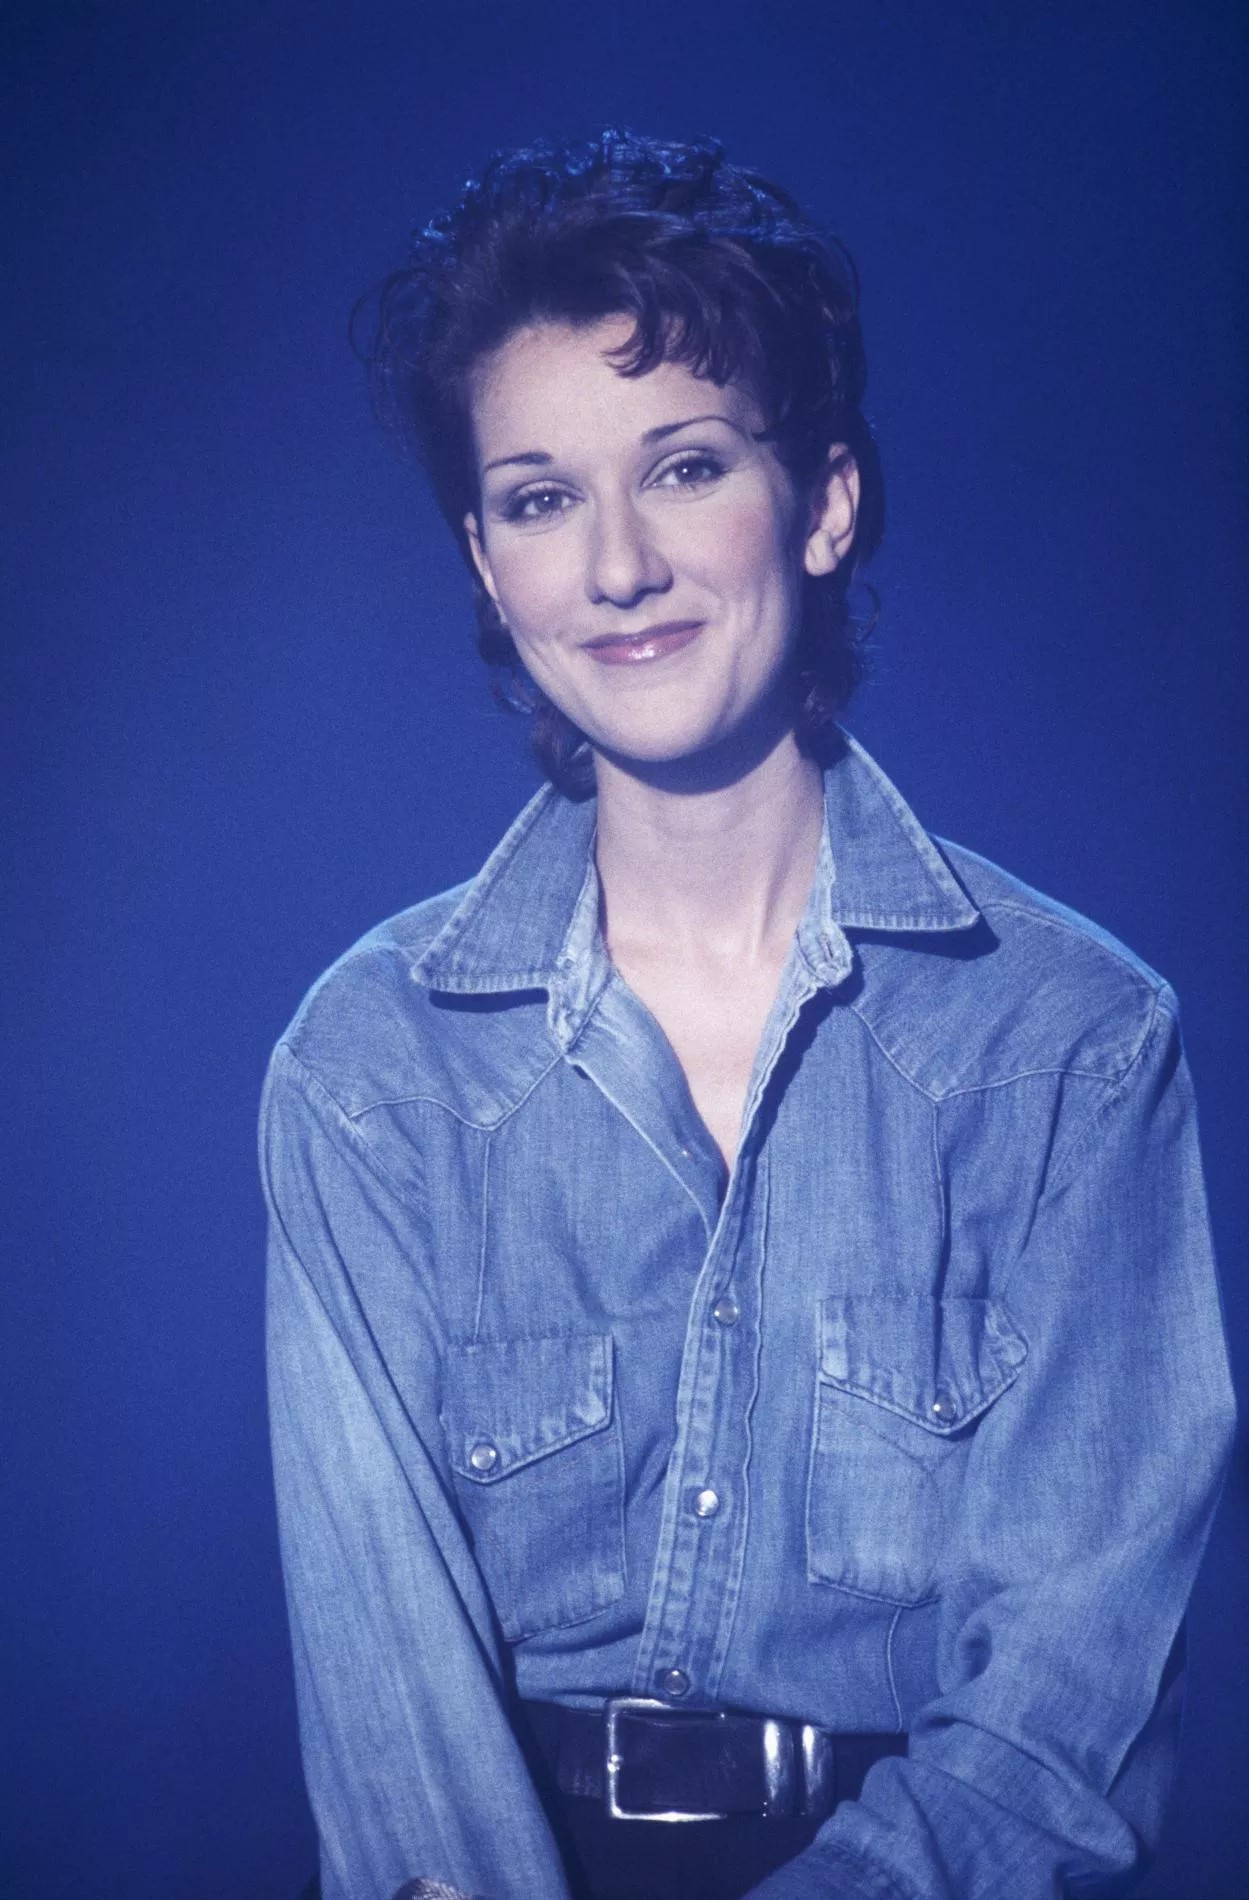 Canadian singer Celine Dion on the television set of Stars 90. (Photo by RONCEN Patrick/KIPA/SYGMA/CORBIS/GUETTY IMAGES/Sygma via Getty Images)